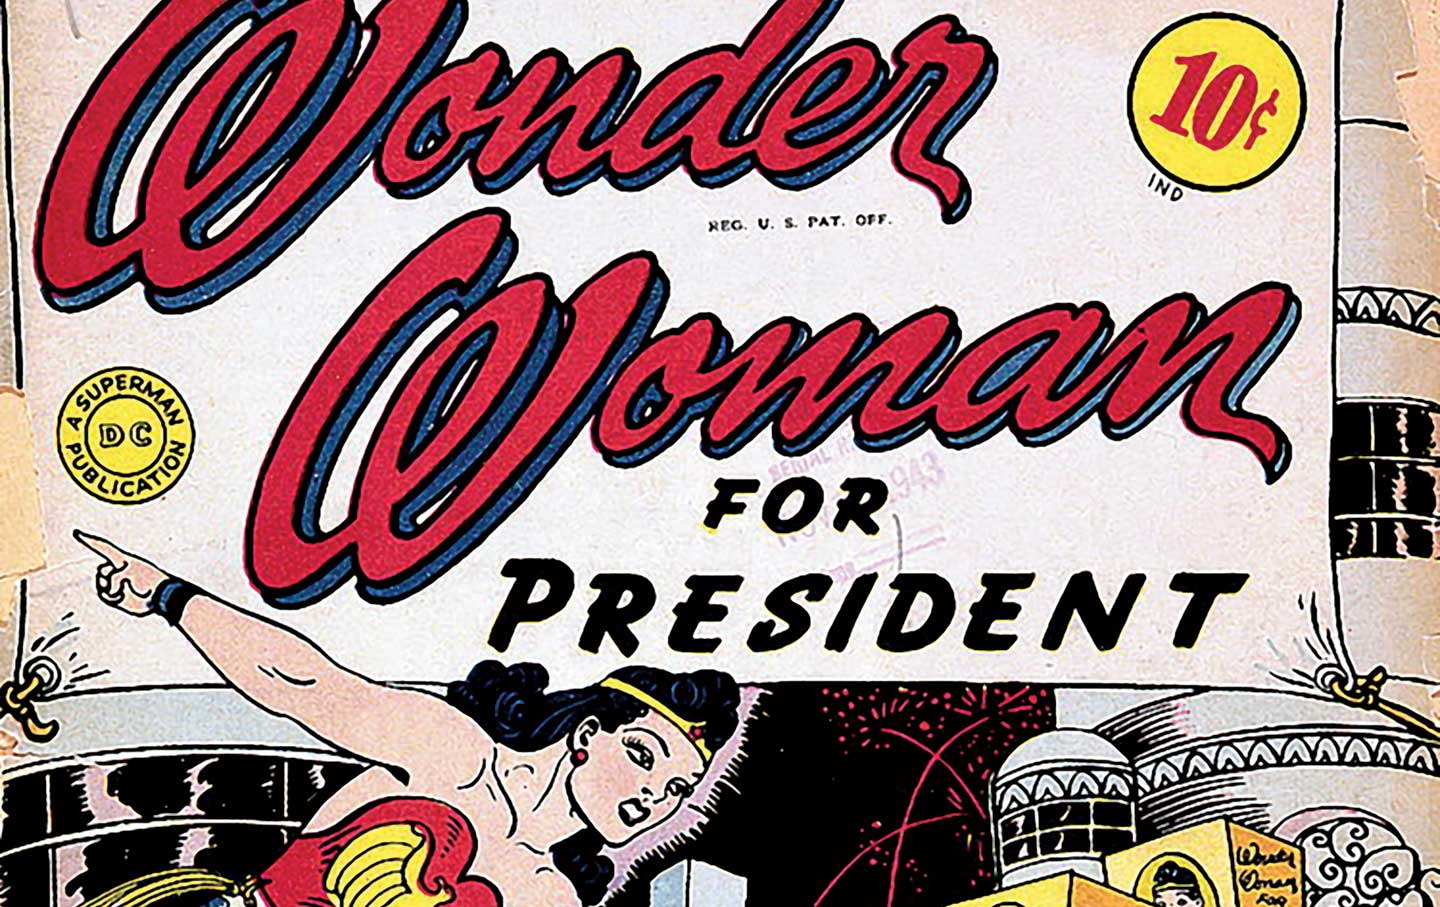 Diana-Prince-is-elected-president-of-the-United-States-in-Wonder-Woman-7-Winter-1943